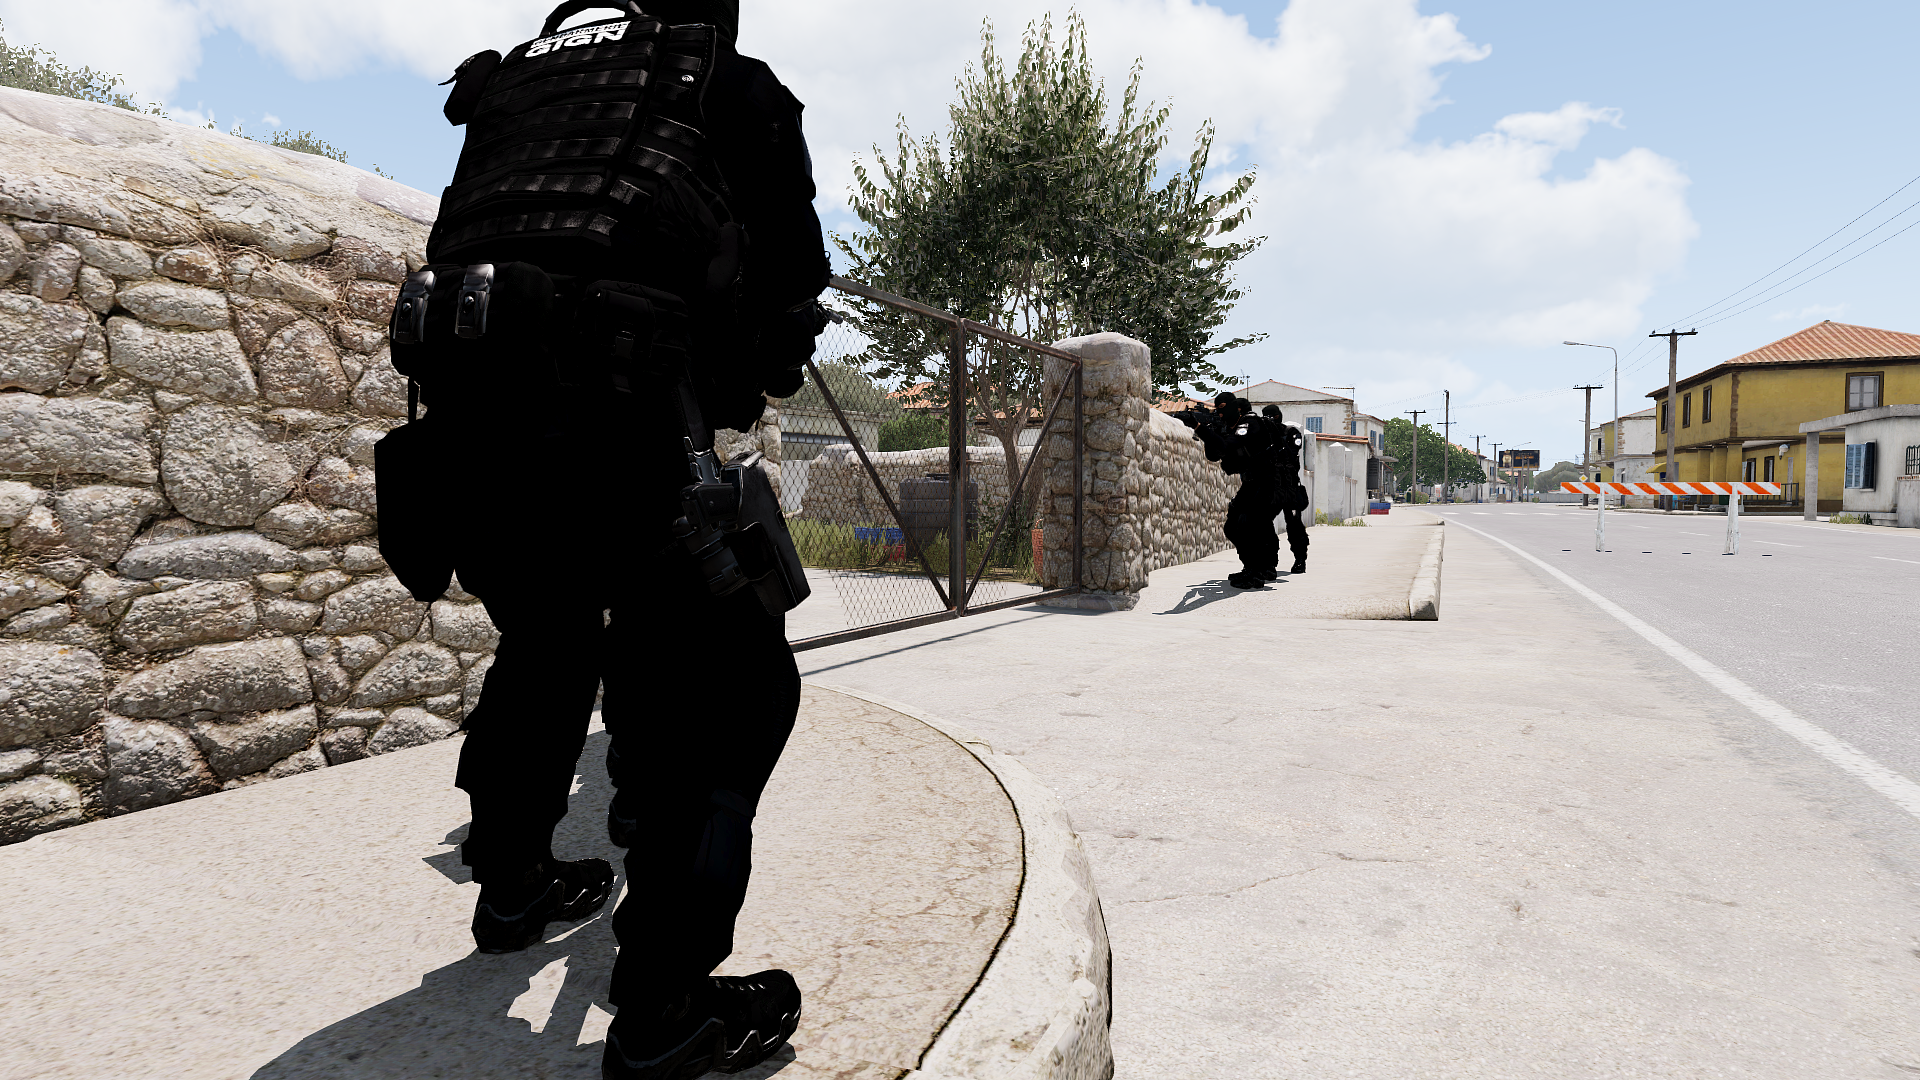 5cadffd499b94-ArmA 3 Screenshot 2019.04.10 - 16.03.32.57.png